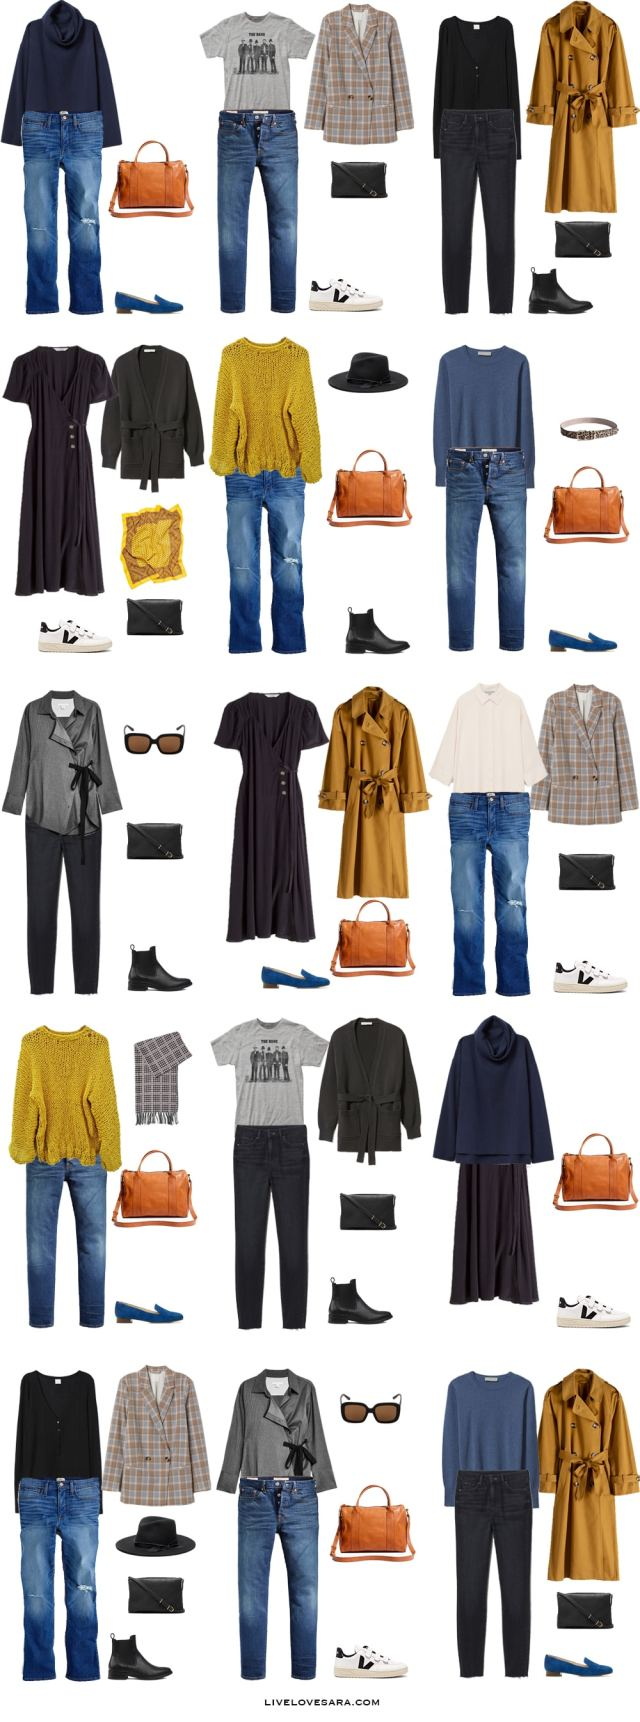 Are you looking for some ideas on what to pack and wear for London, England in the spring? Head over to my post for what to pack and outfit ideas. London England Packing Light List | What to pack for London | What to Pack for England | #worldtravel #springtravel #packinglight Packing Light | International Packing List | Travel Light | Travel Wardrobe | Travel Capsule | Capsule | Pack for vacation #travellight #packinglight #travelcapsule #capsulewardrobe #capsule